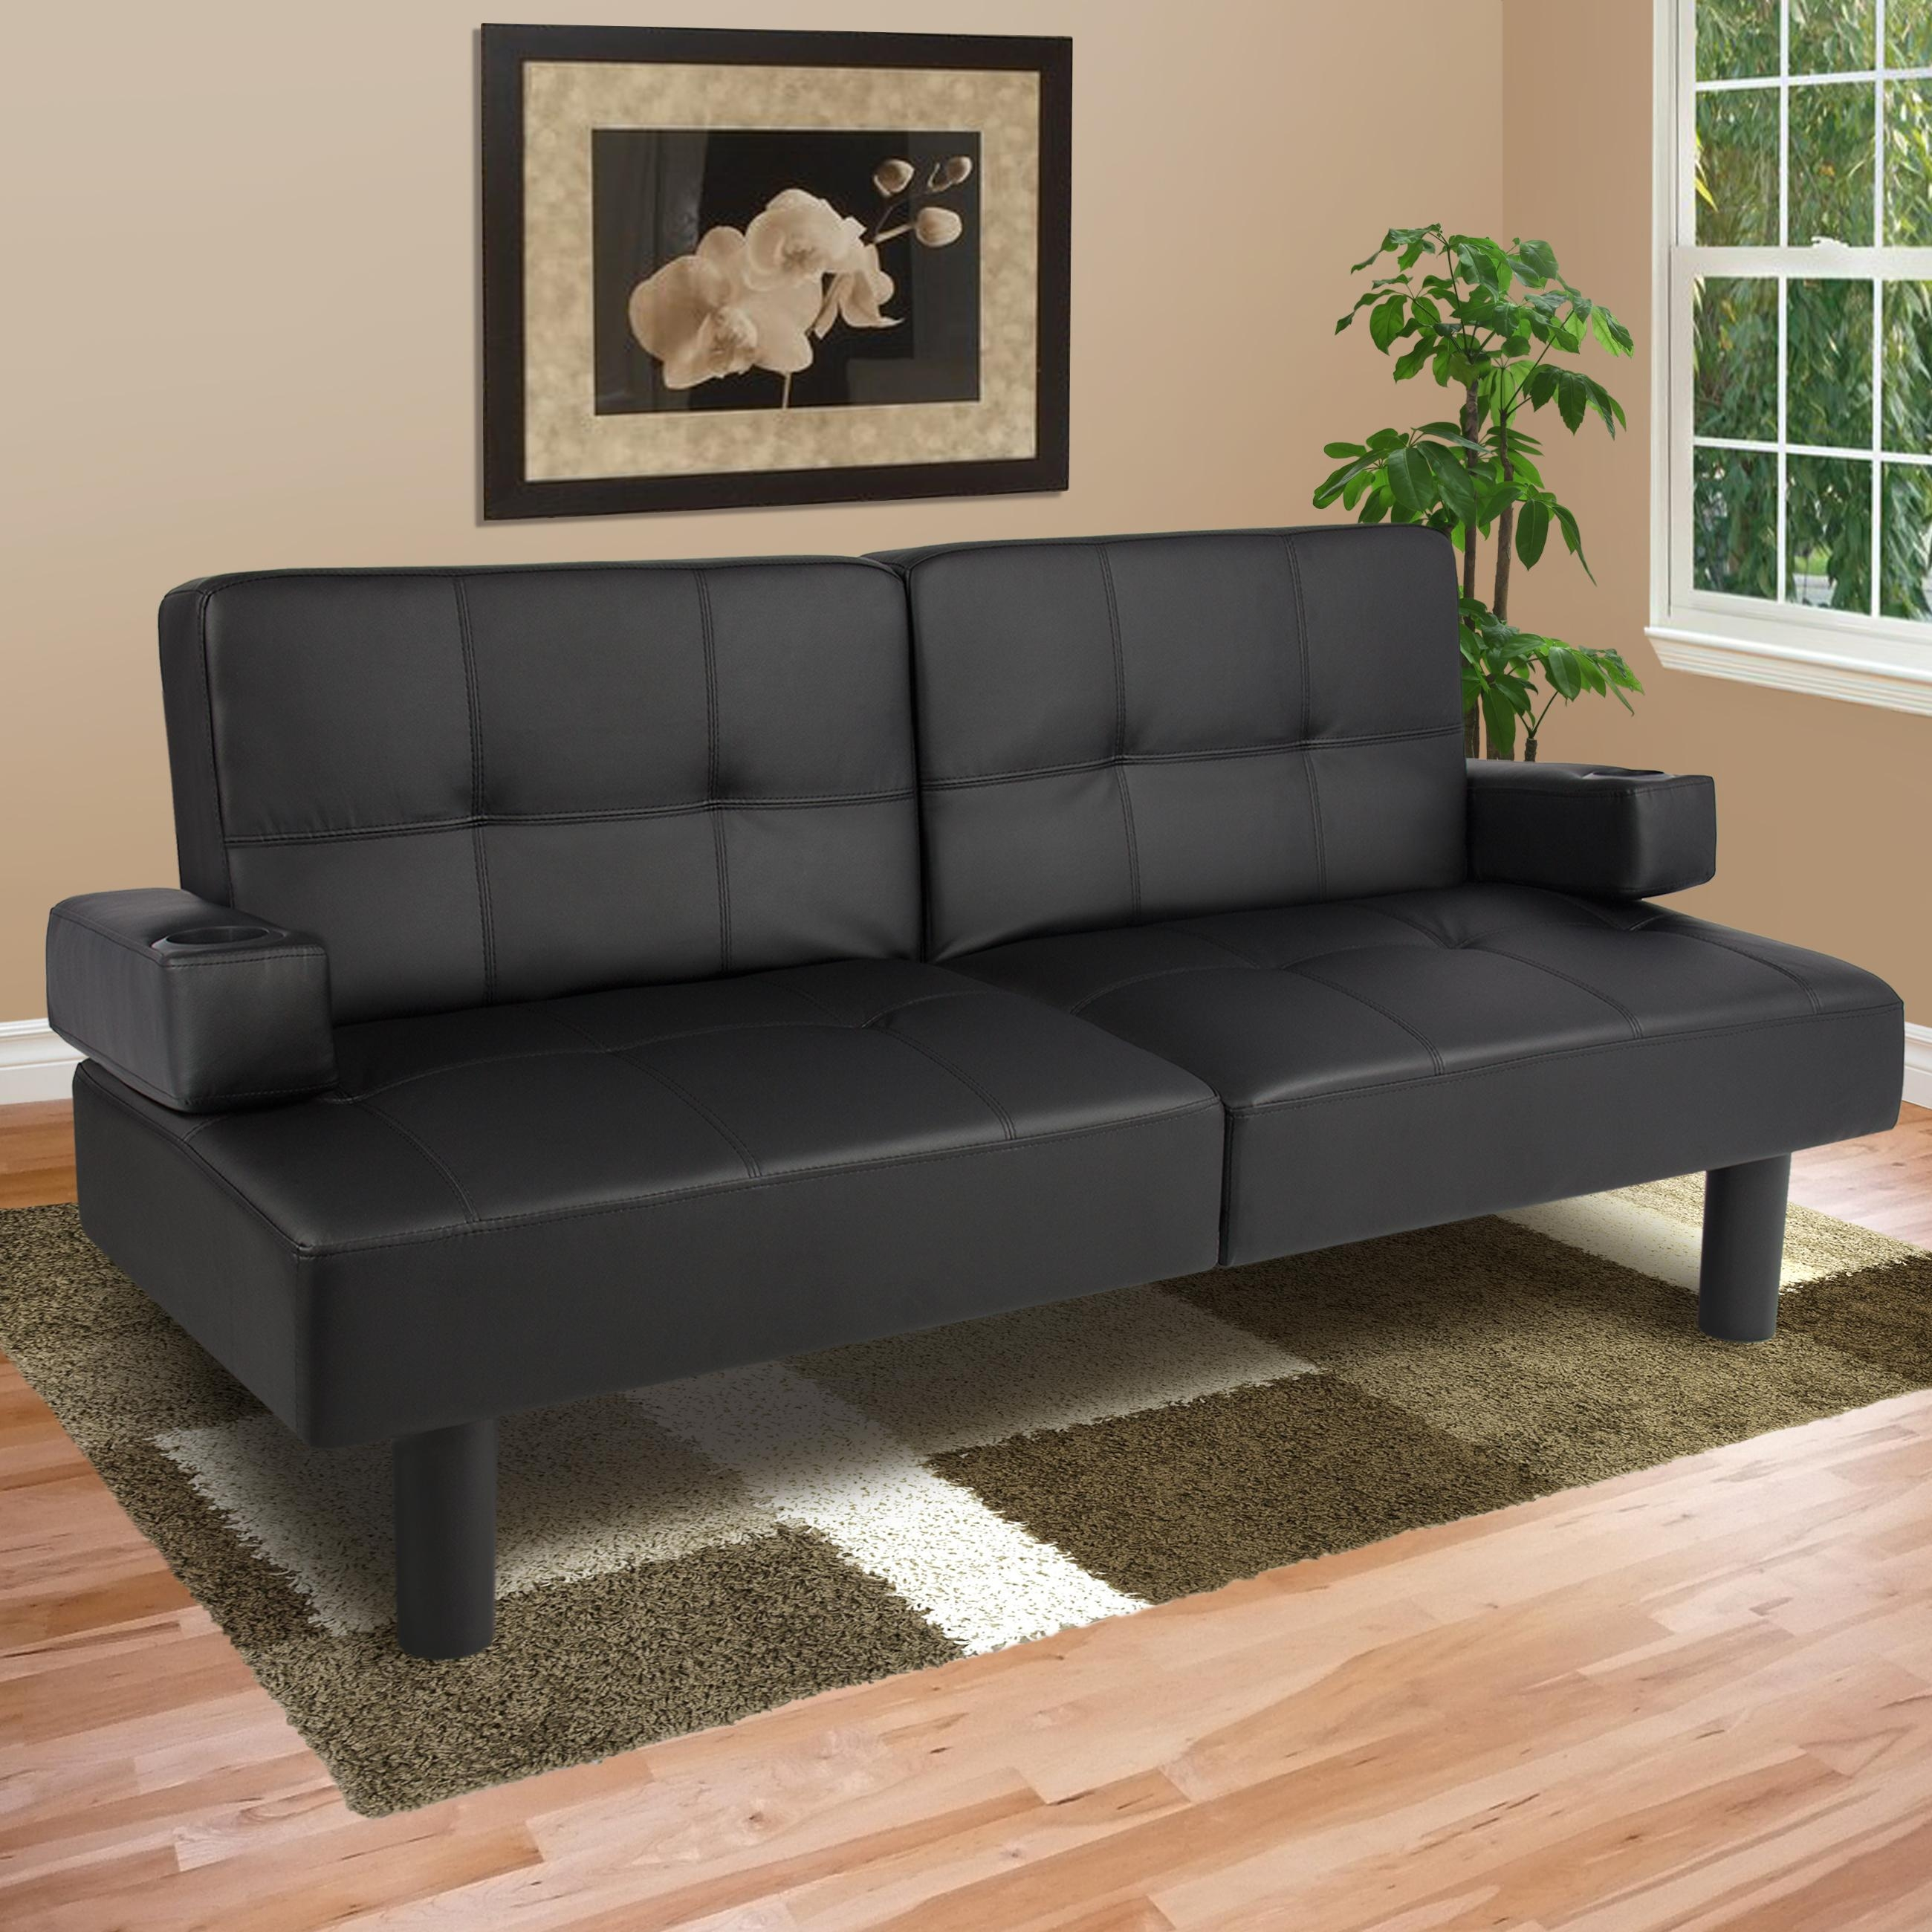 Best Choice Products Modern Leather Futon Sofa Bed Fold Up & Down With Regard To Futon Couch Beds (Image 7 of 20)